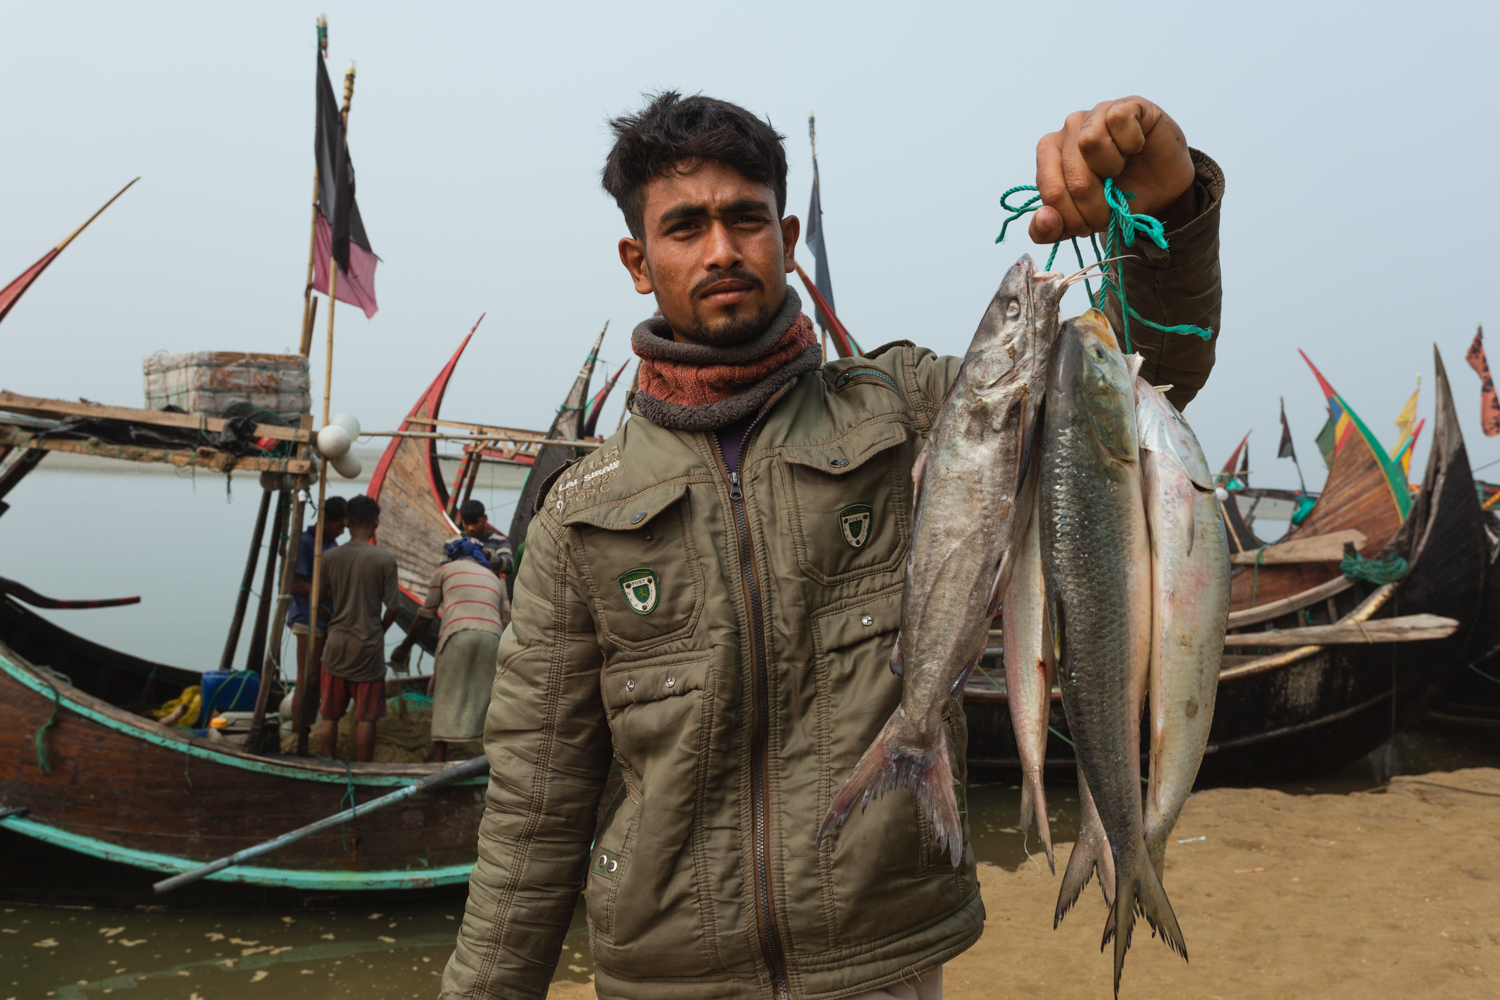 Young man with his prize catch at Bay of Bengal Cox's Bazar Bangladesh